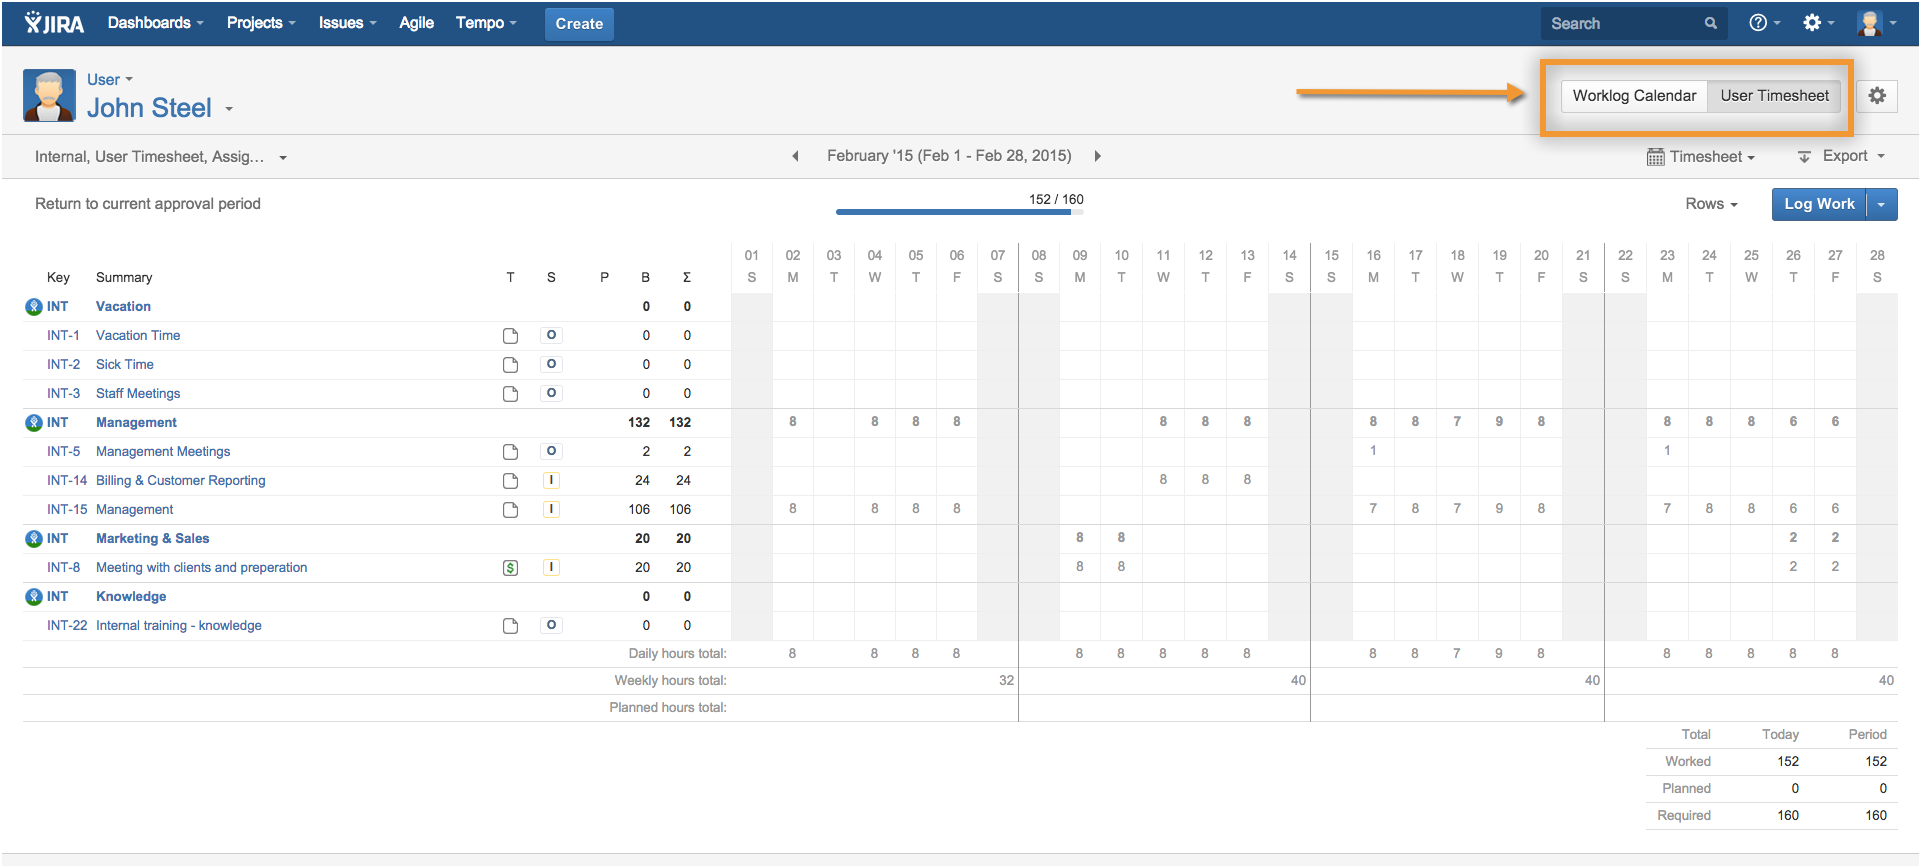 accessing worklog calendar from top-right corner